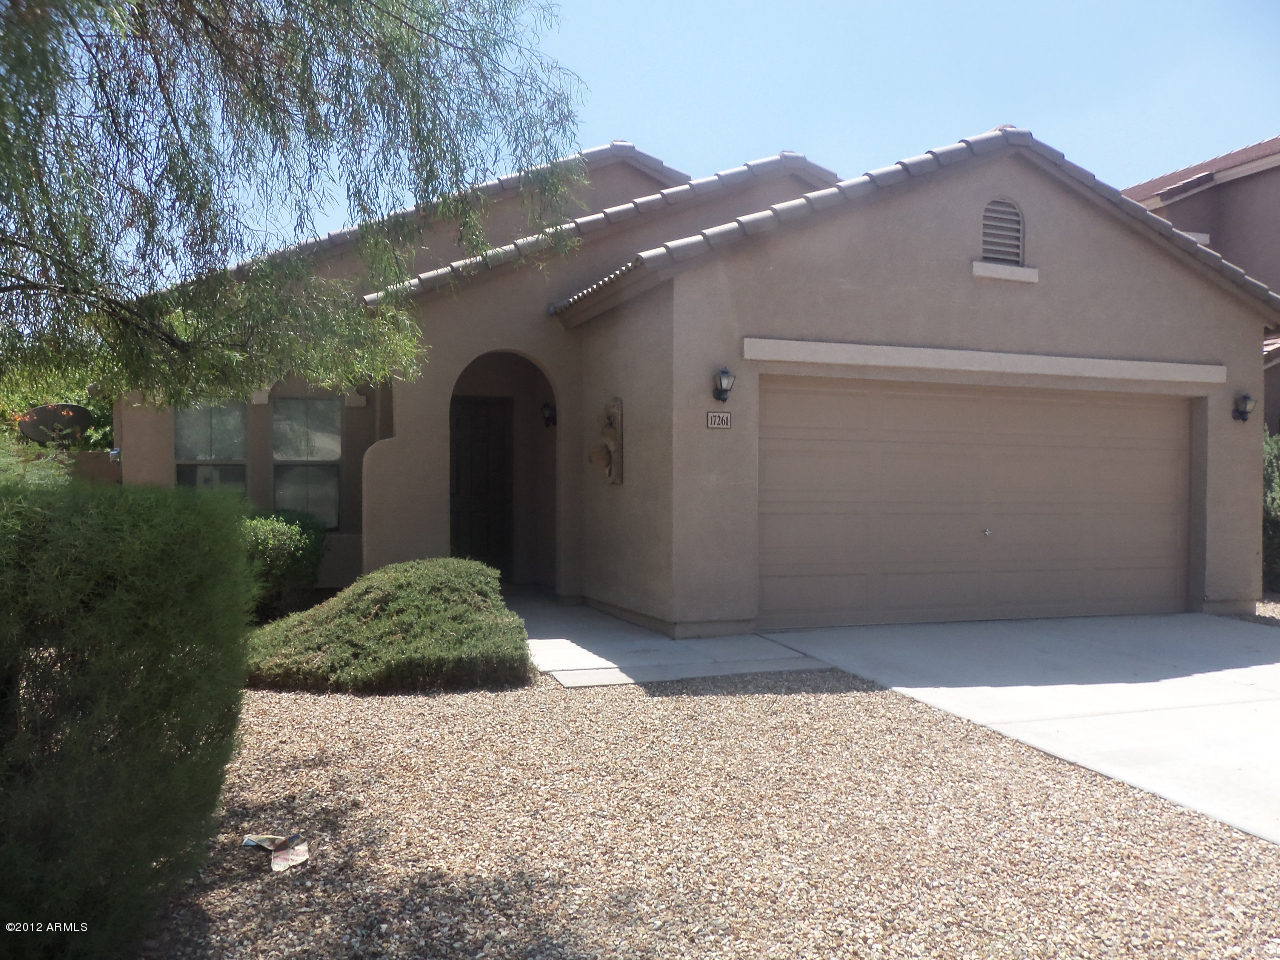 17261 W Maui Lane, Surprise AZ 85388 - Photo 1